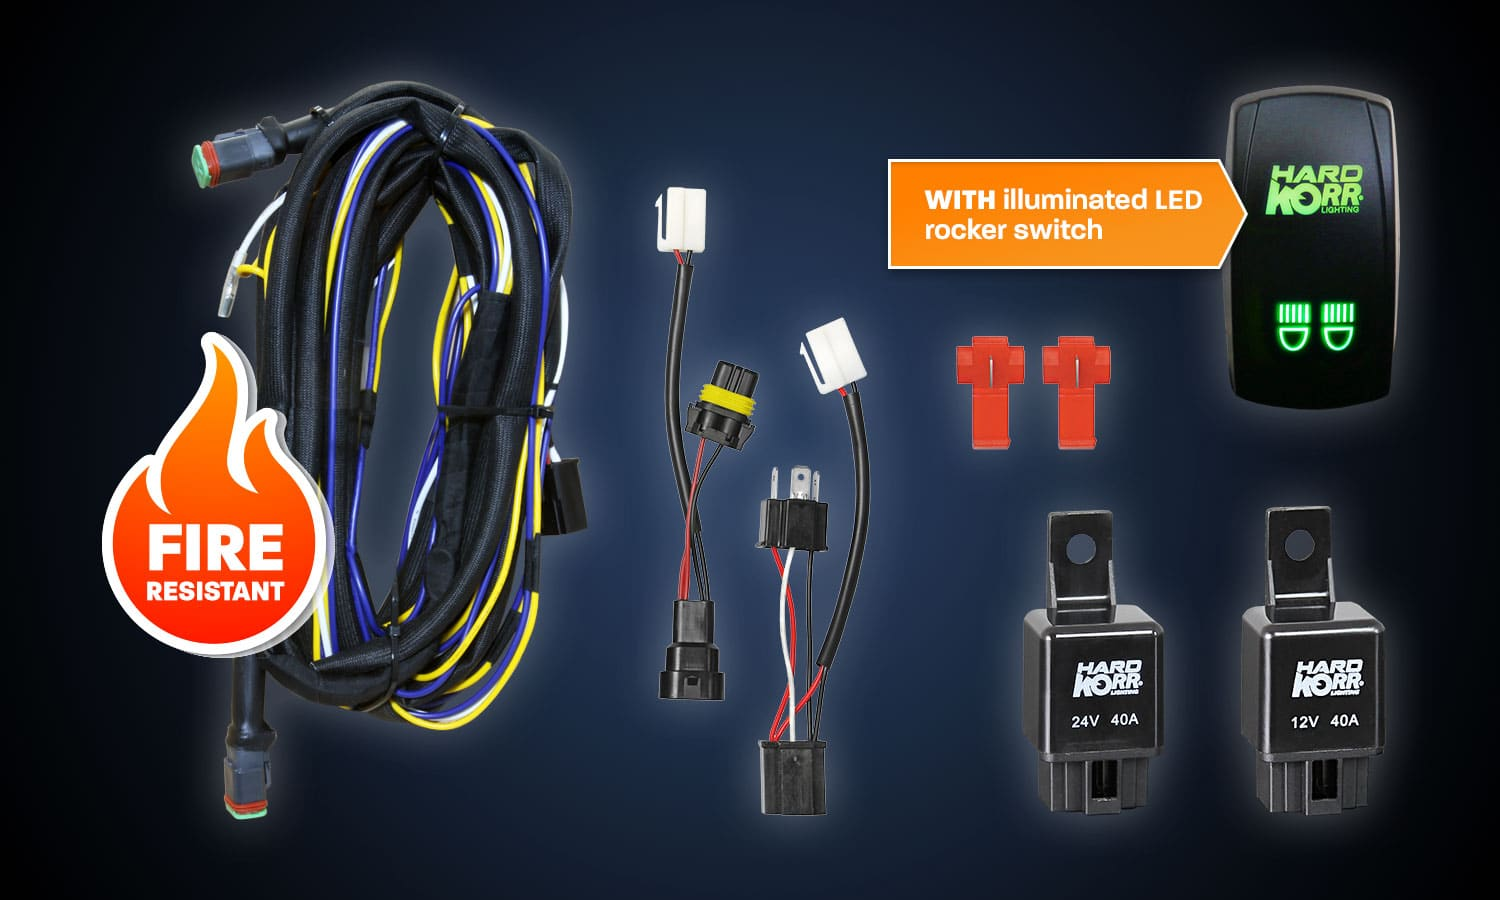 Terrific Wiring Harness Kit With Illuminated Rocker Switch Hard Korr Uk Wiring 101 Mentrastrewellnesstrialsorg